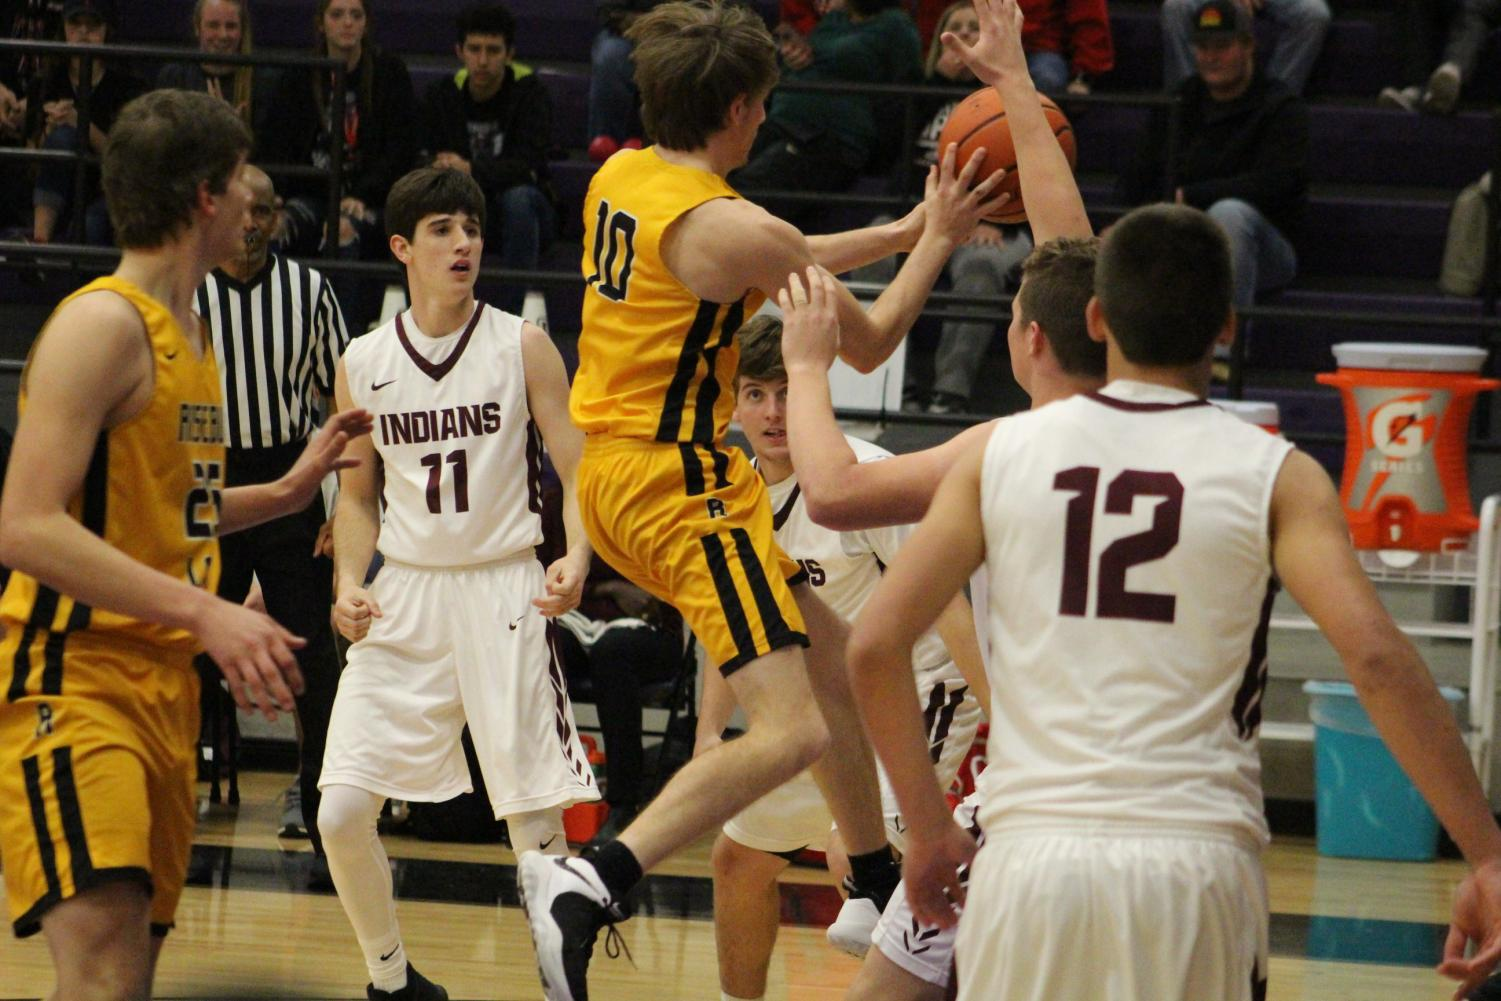 Haven Mortimer drives to the basket in the bi-dstrict win Monday night.